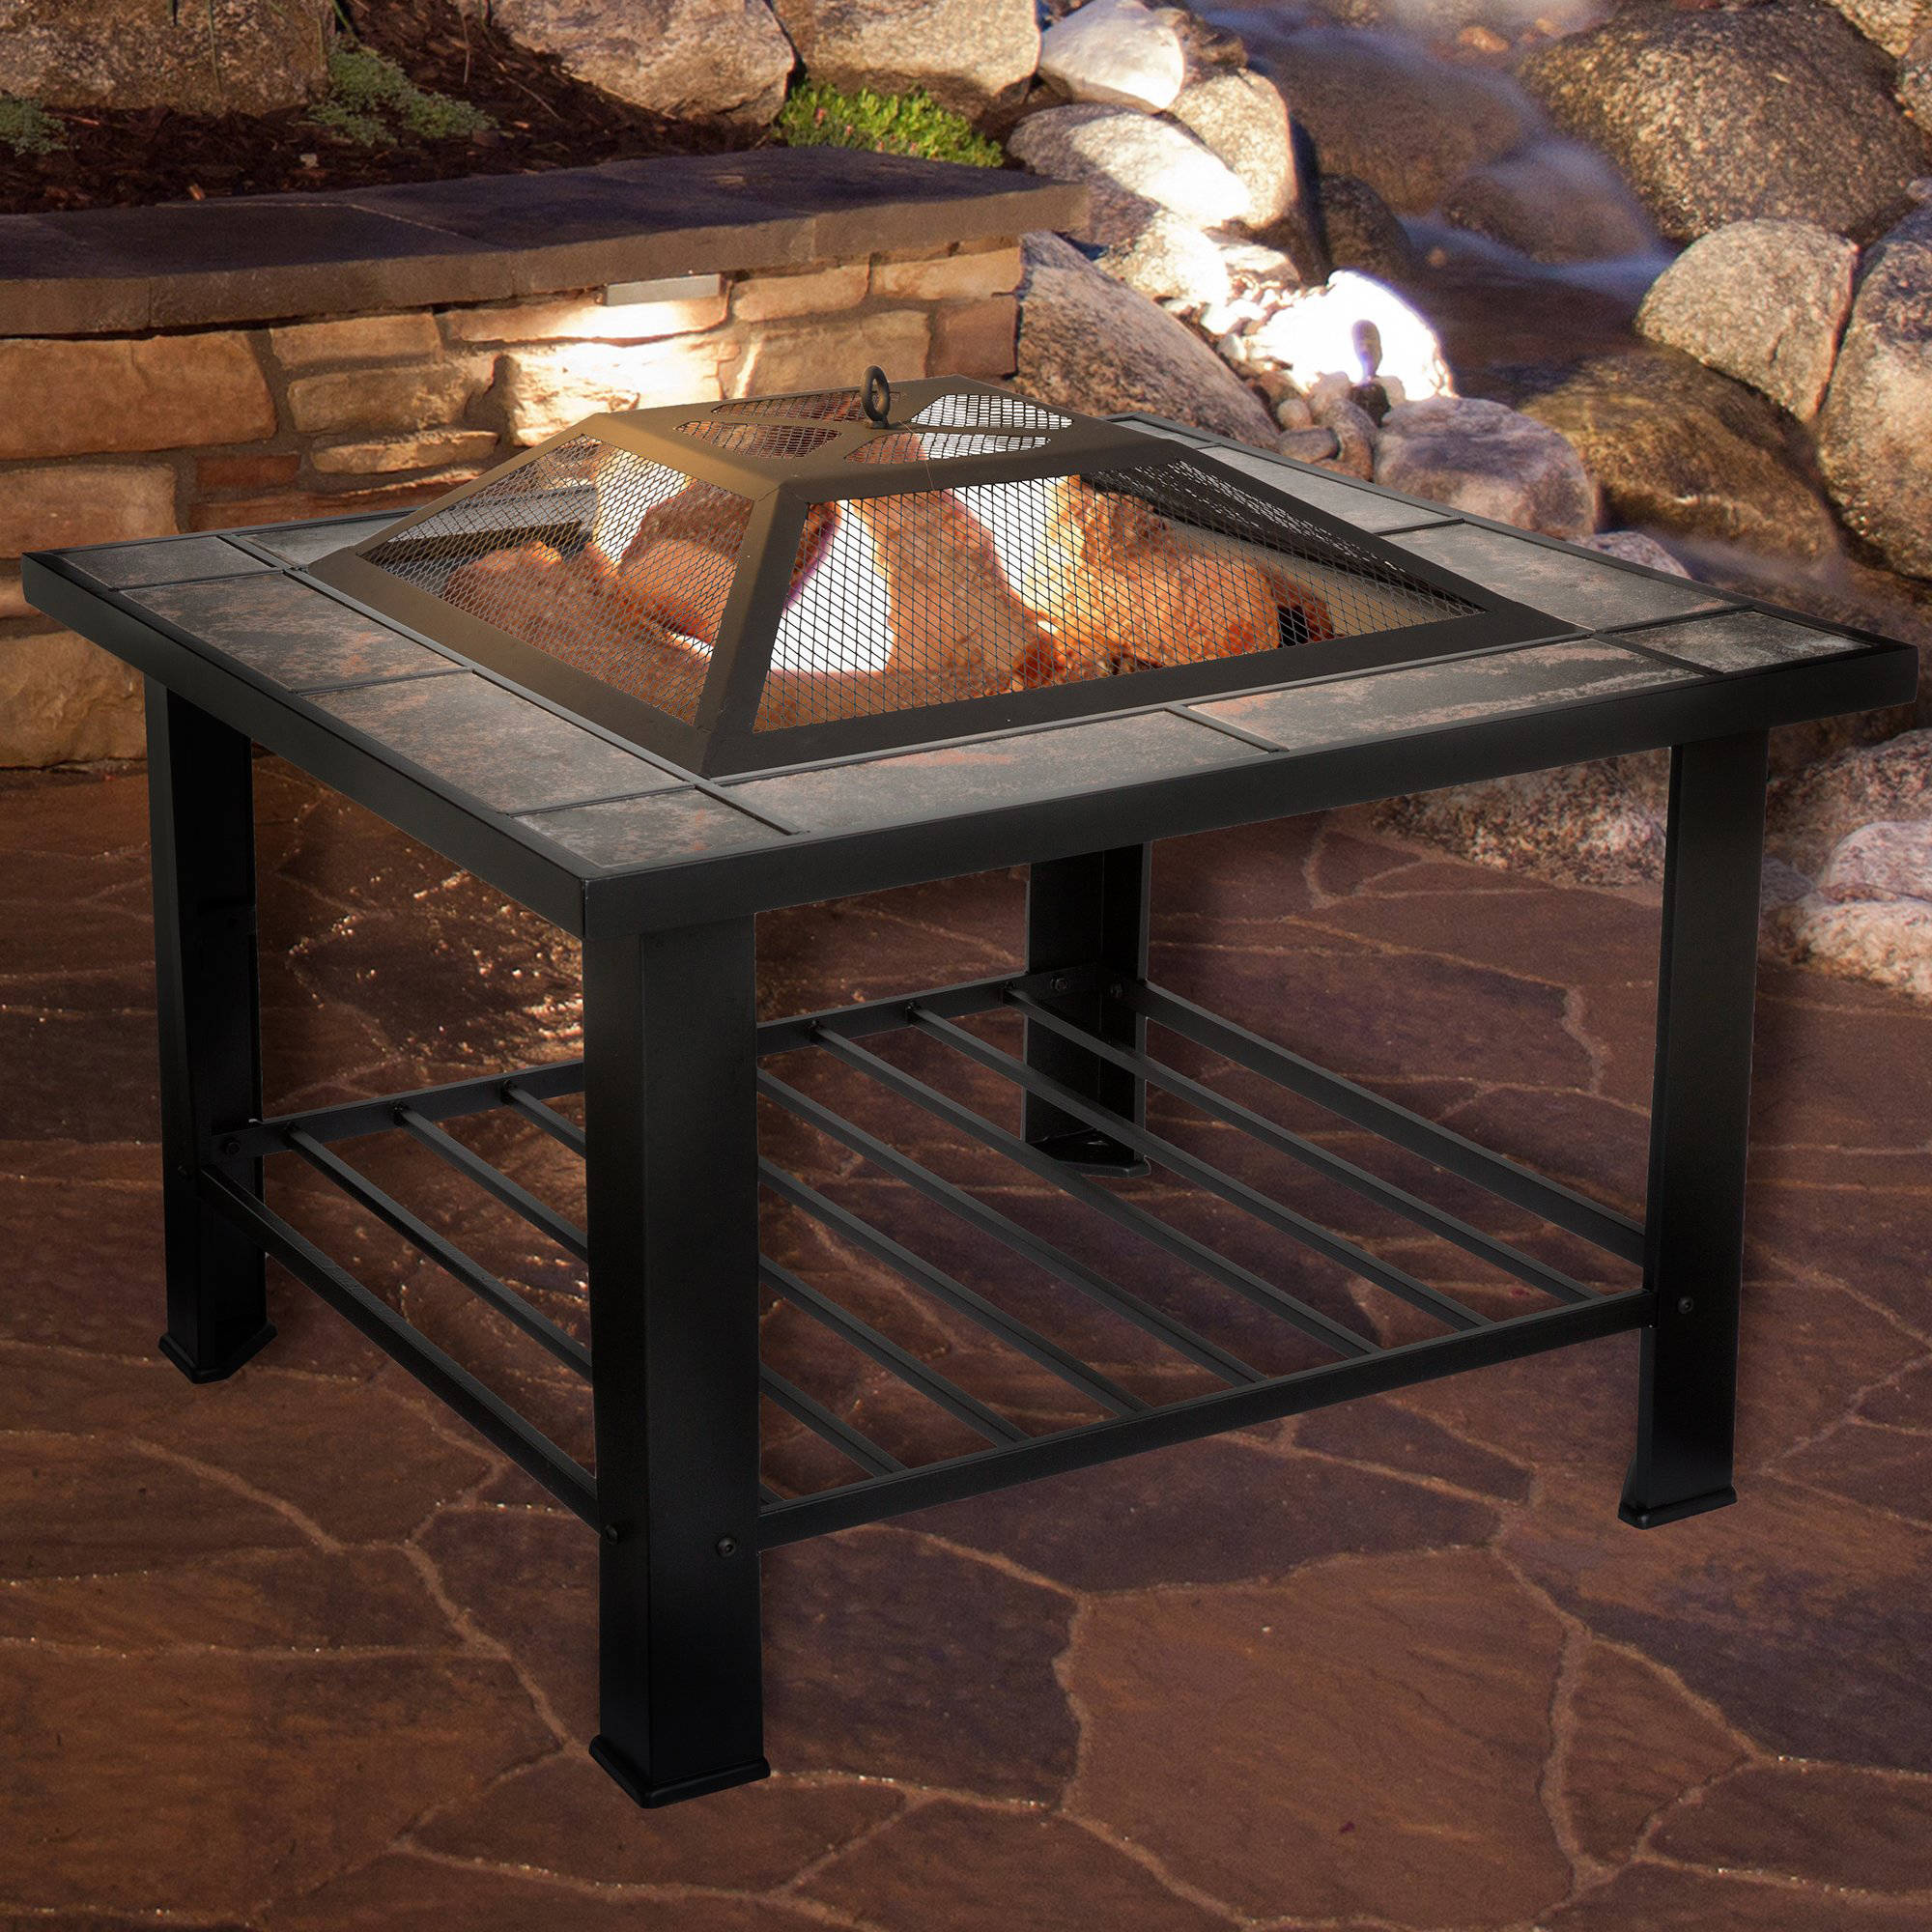 Fire Pit Set, Wood Burning Pit   Includes Screen, Cover And Log Poker    Great For Outdoor And Patio, 30 Inch Square Marble Tile Fire Pit By Pure  Garden ...